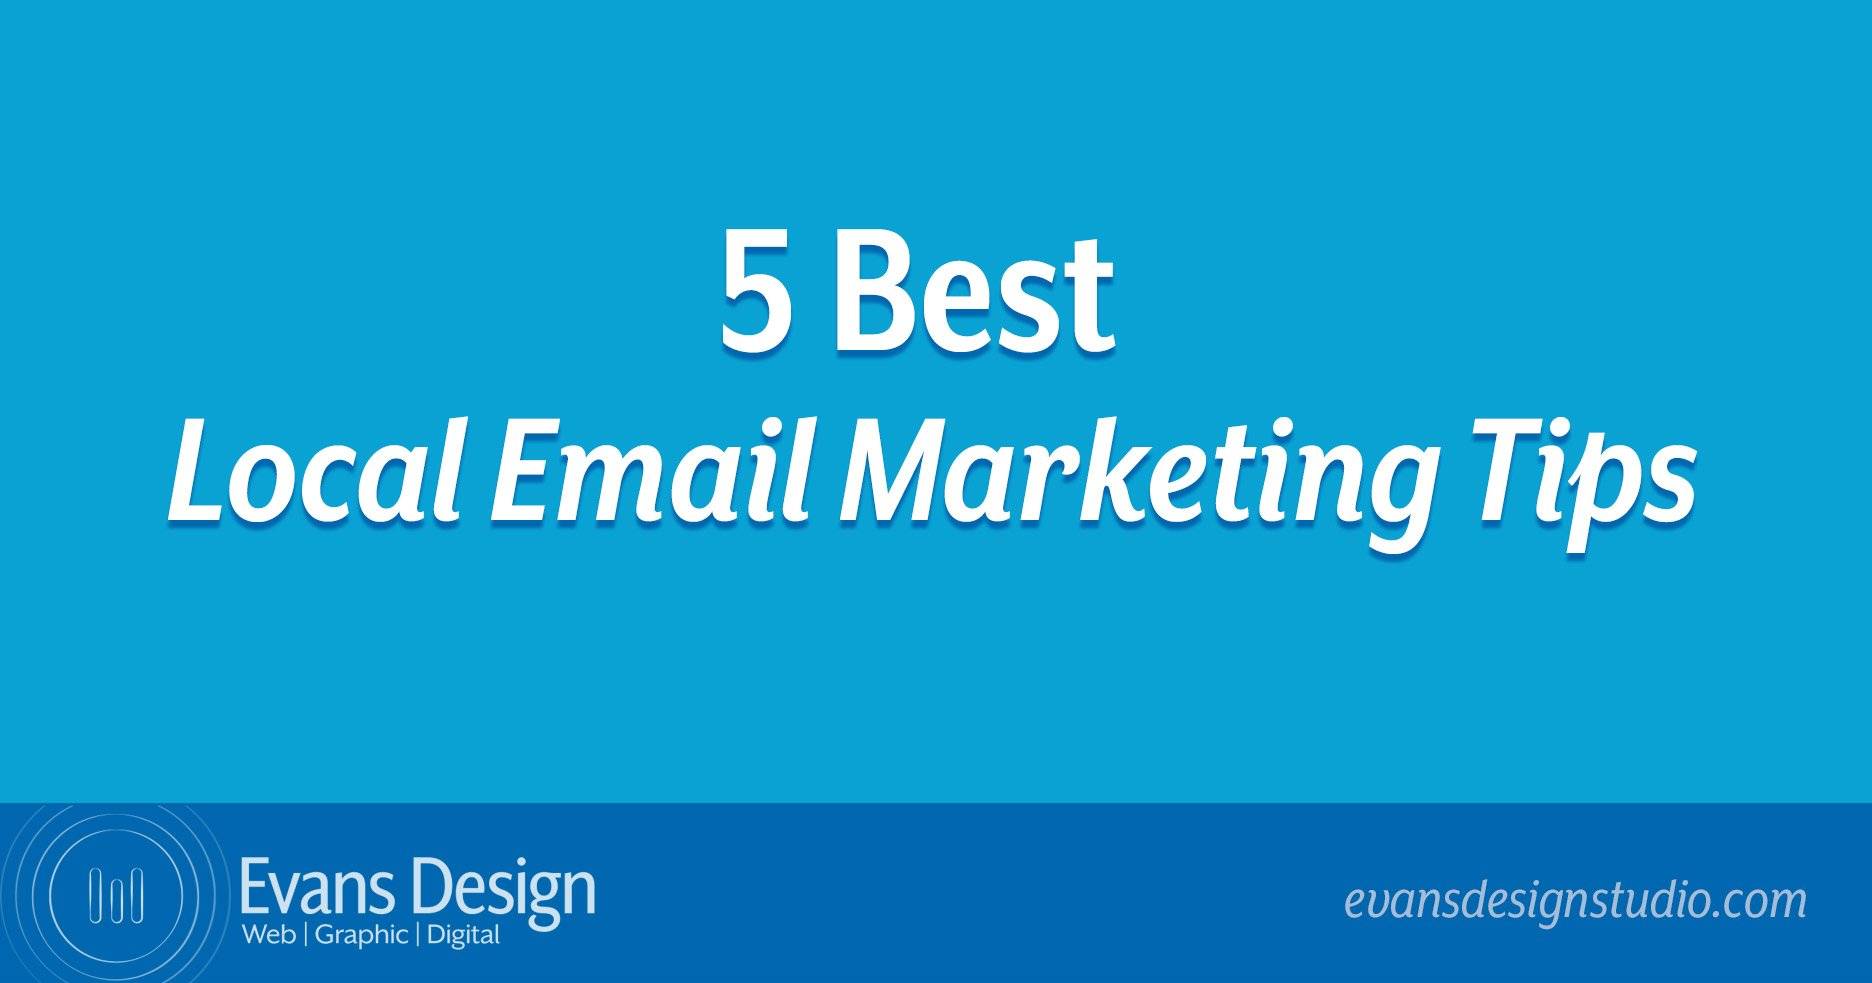 5 Best Local Email Marketing Tips - Cumming SEO Company